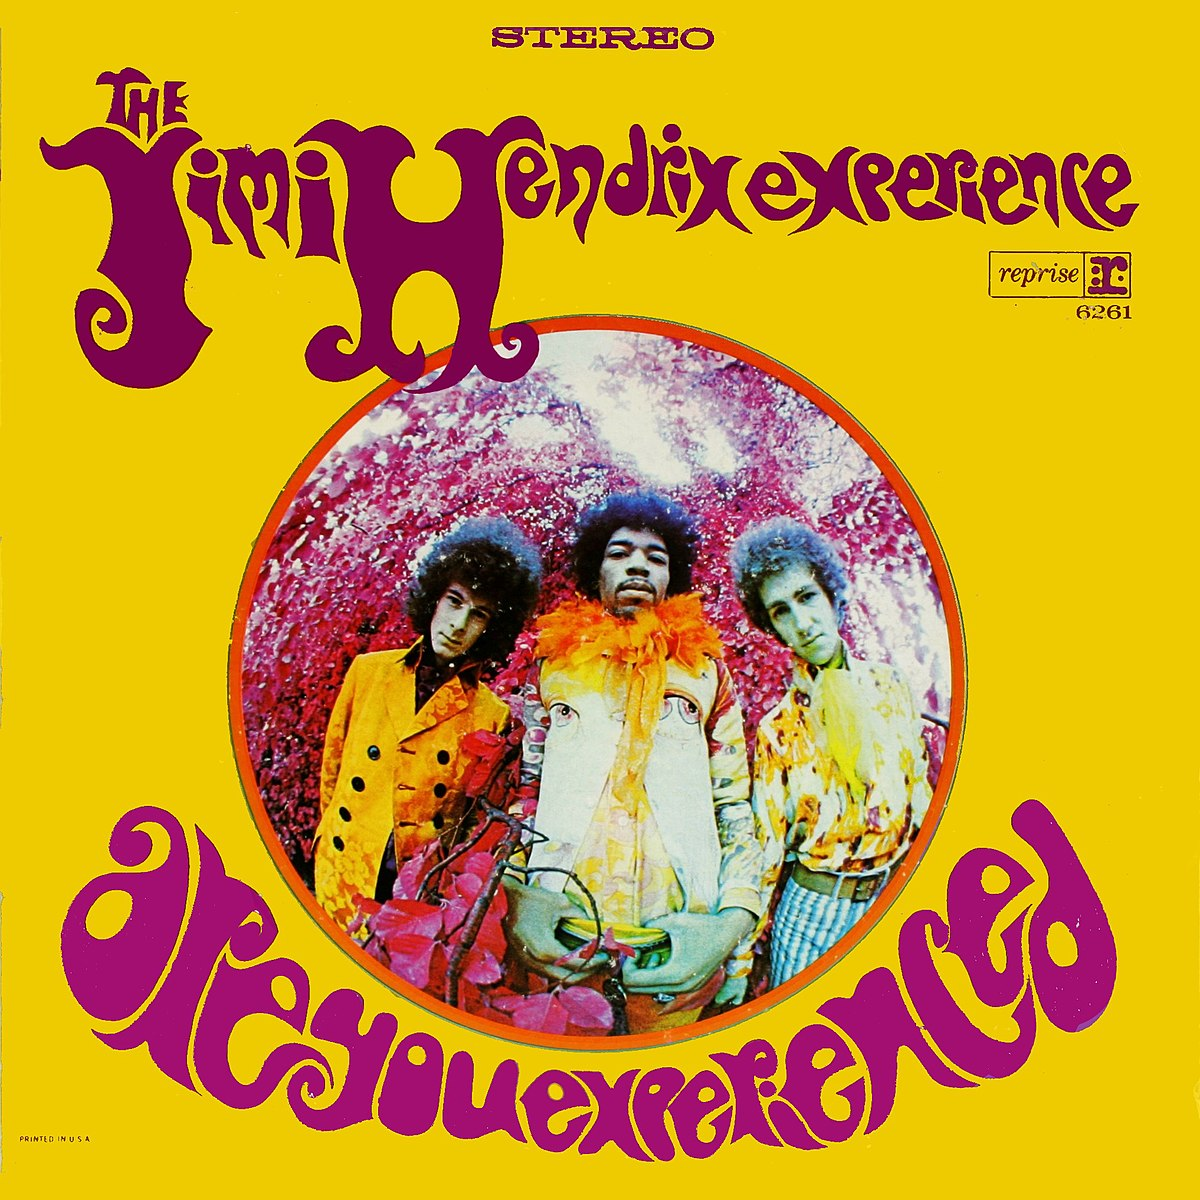 Are You Experienced - Wikipedia